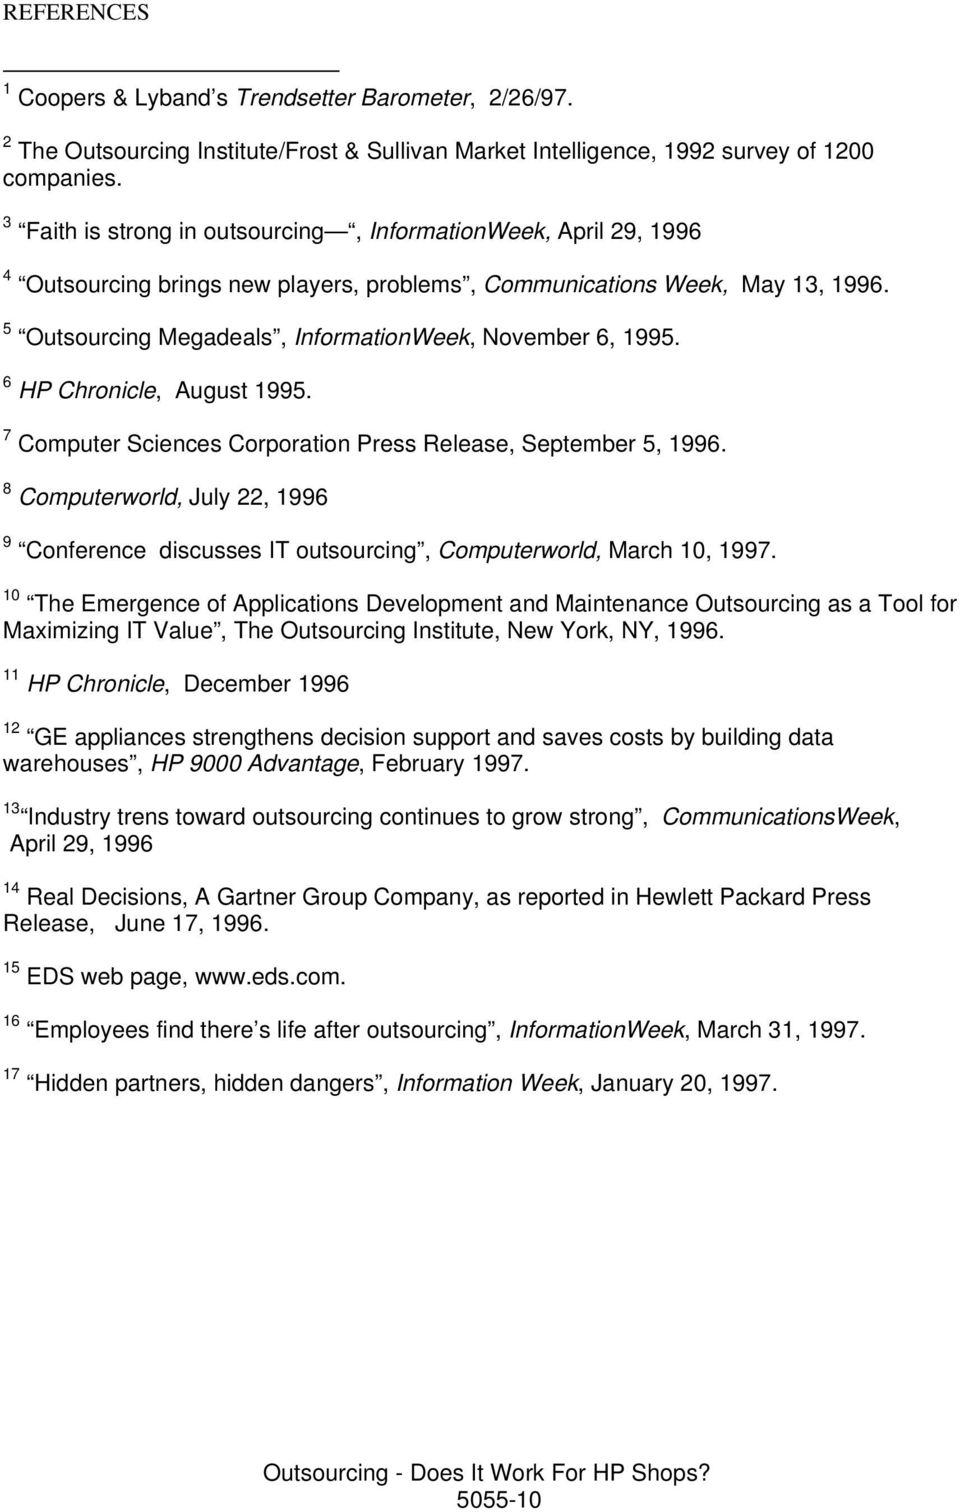 5 Outsourcing Megadeals, InformationWeek, November 6, 1995. 6 HP Chronicle, August 1995. 7 Computer Sciences Corporation Press Release, September 5, 1996.